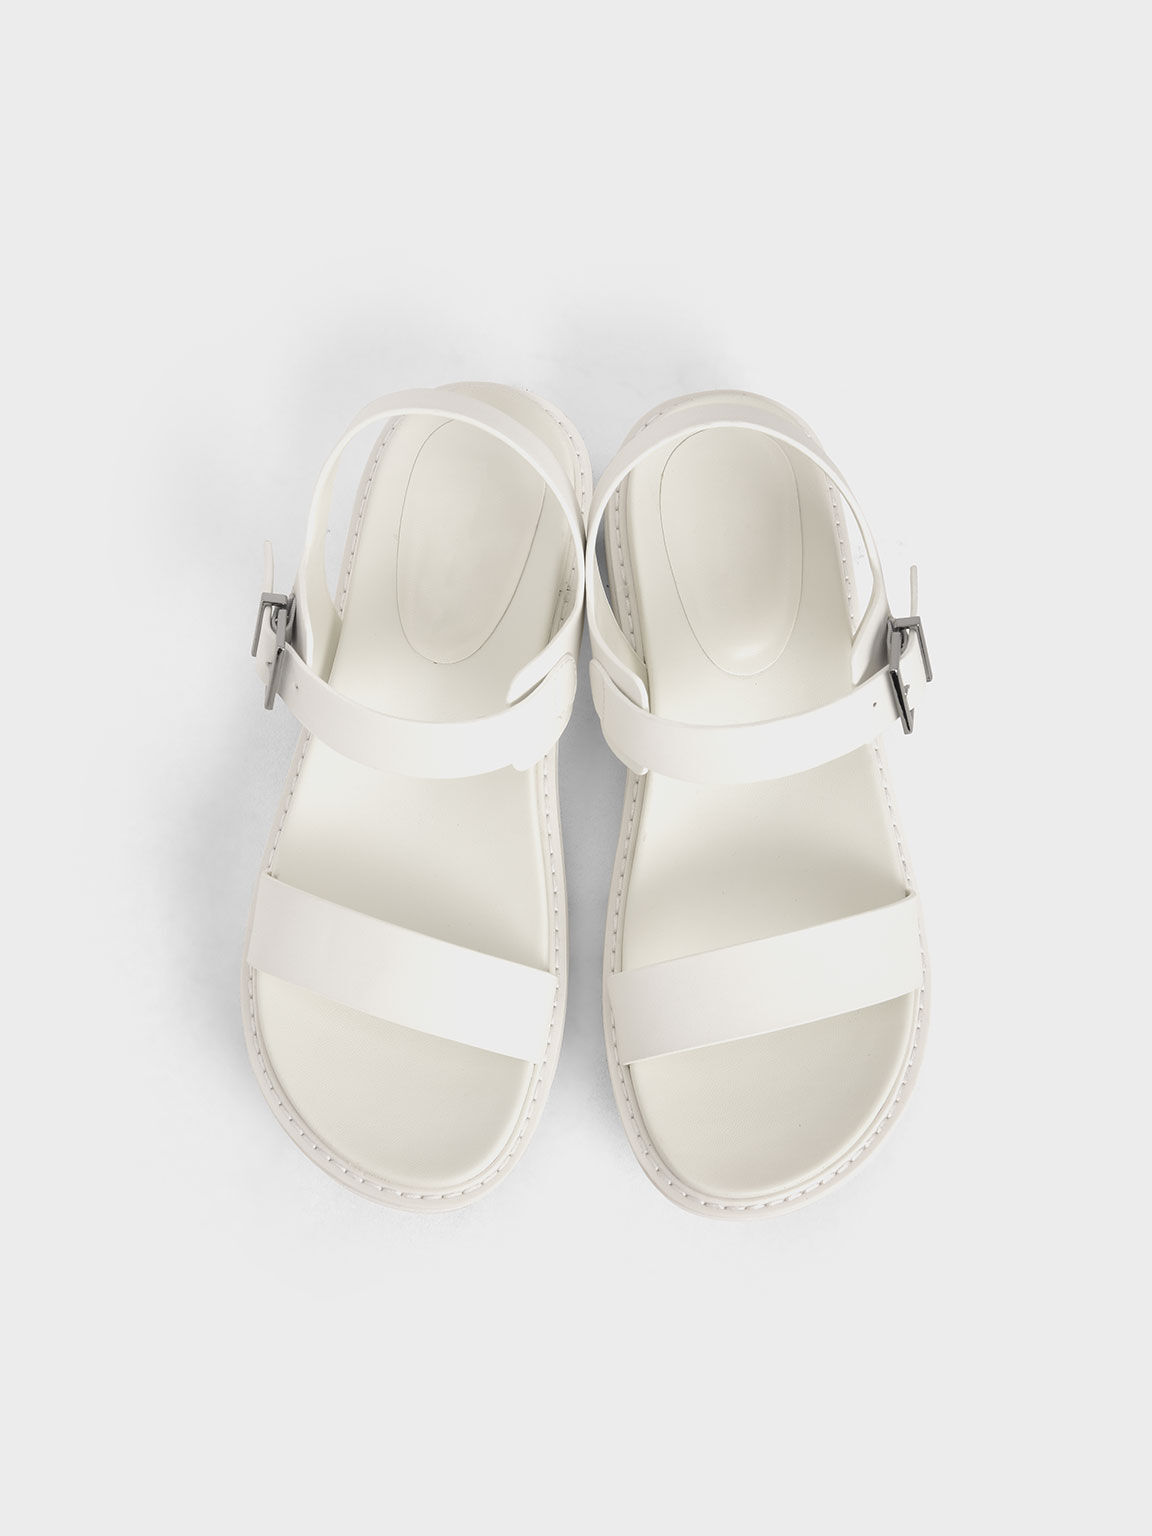 Ankle Strap Sandals, White, hi-res